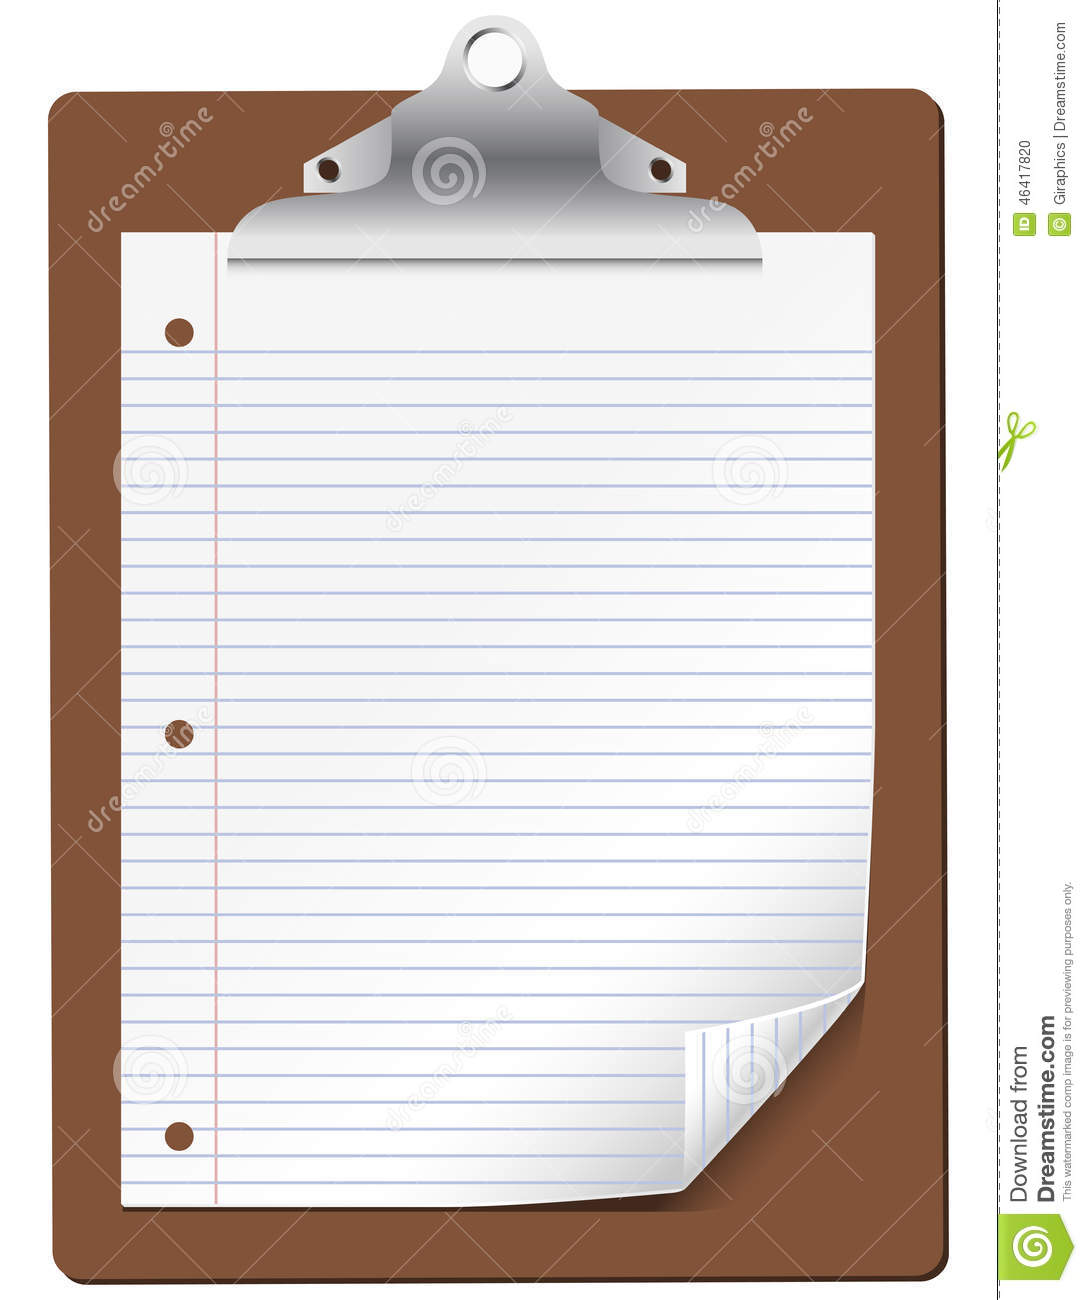 vector clipboard with lined paper stock vector illustration of